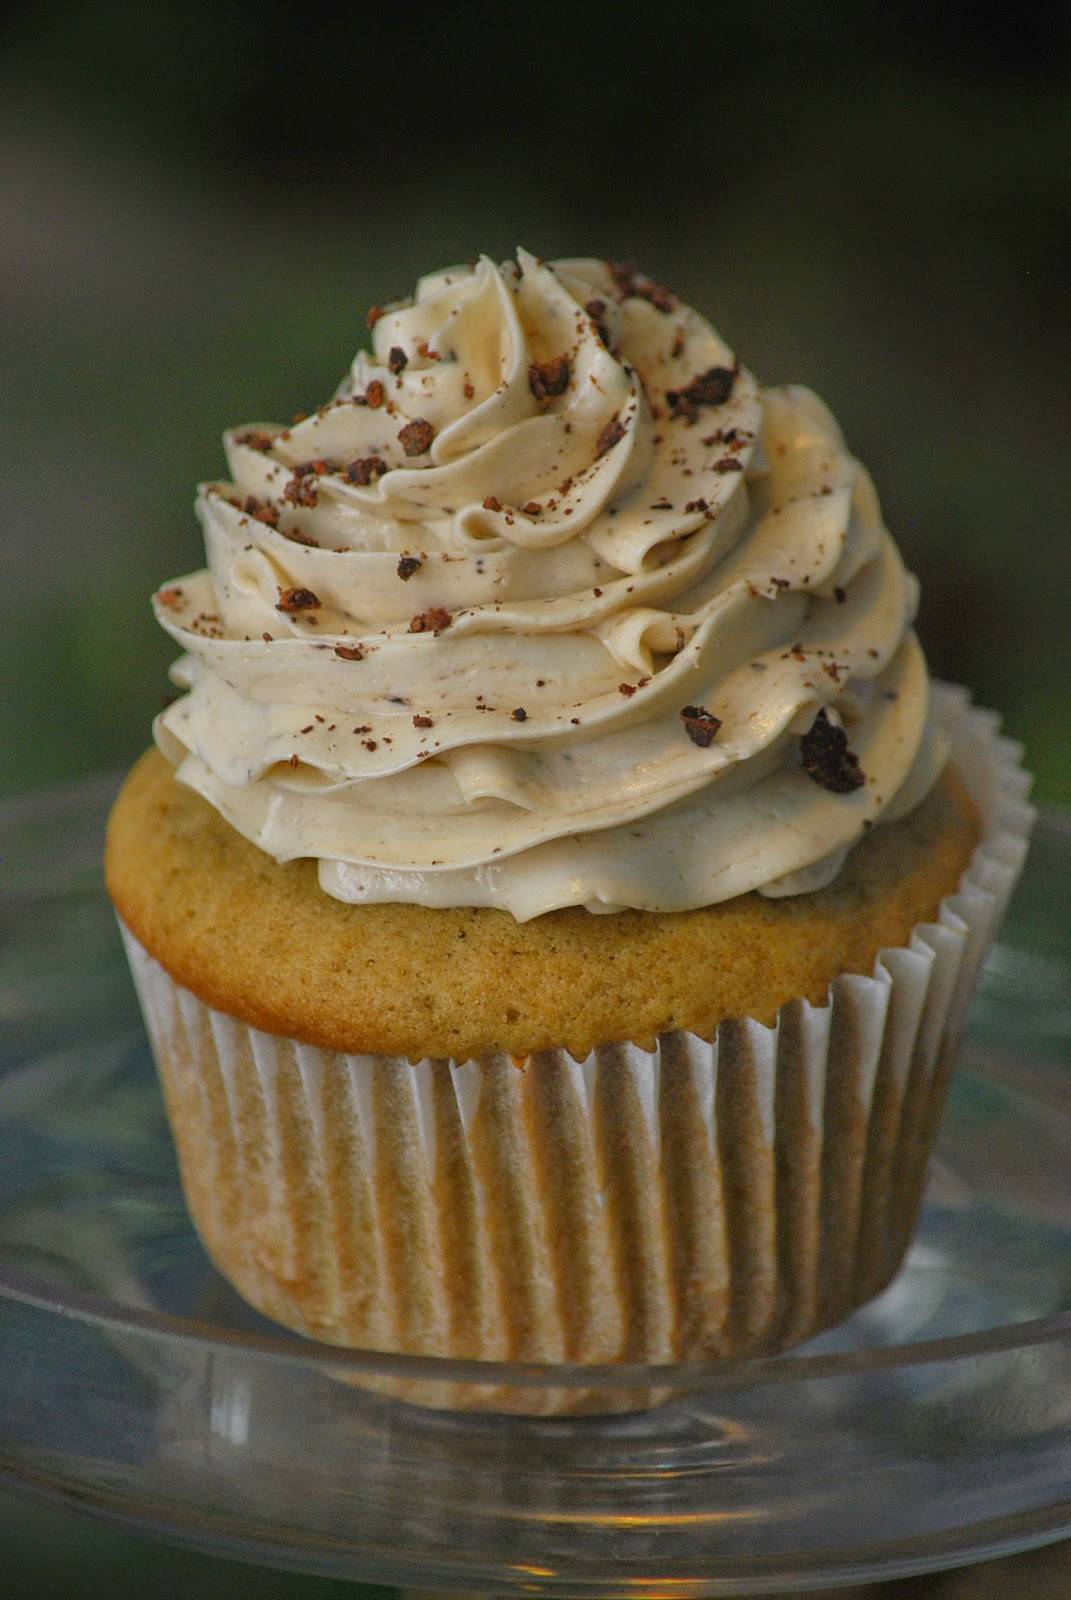 Coffee cake cupcakes: indulge in cupcakes for breakfast